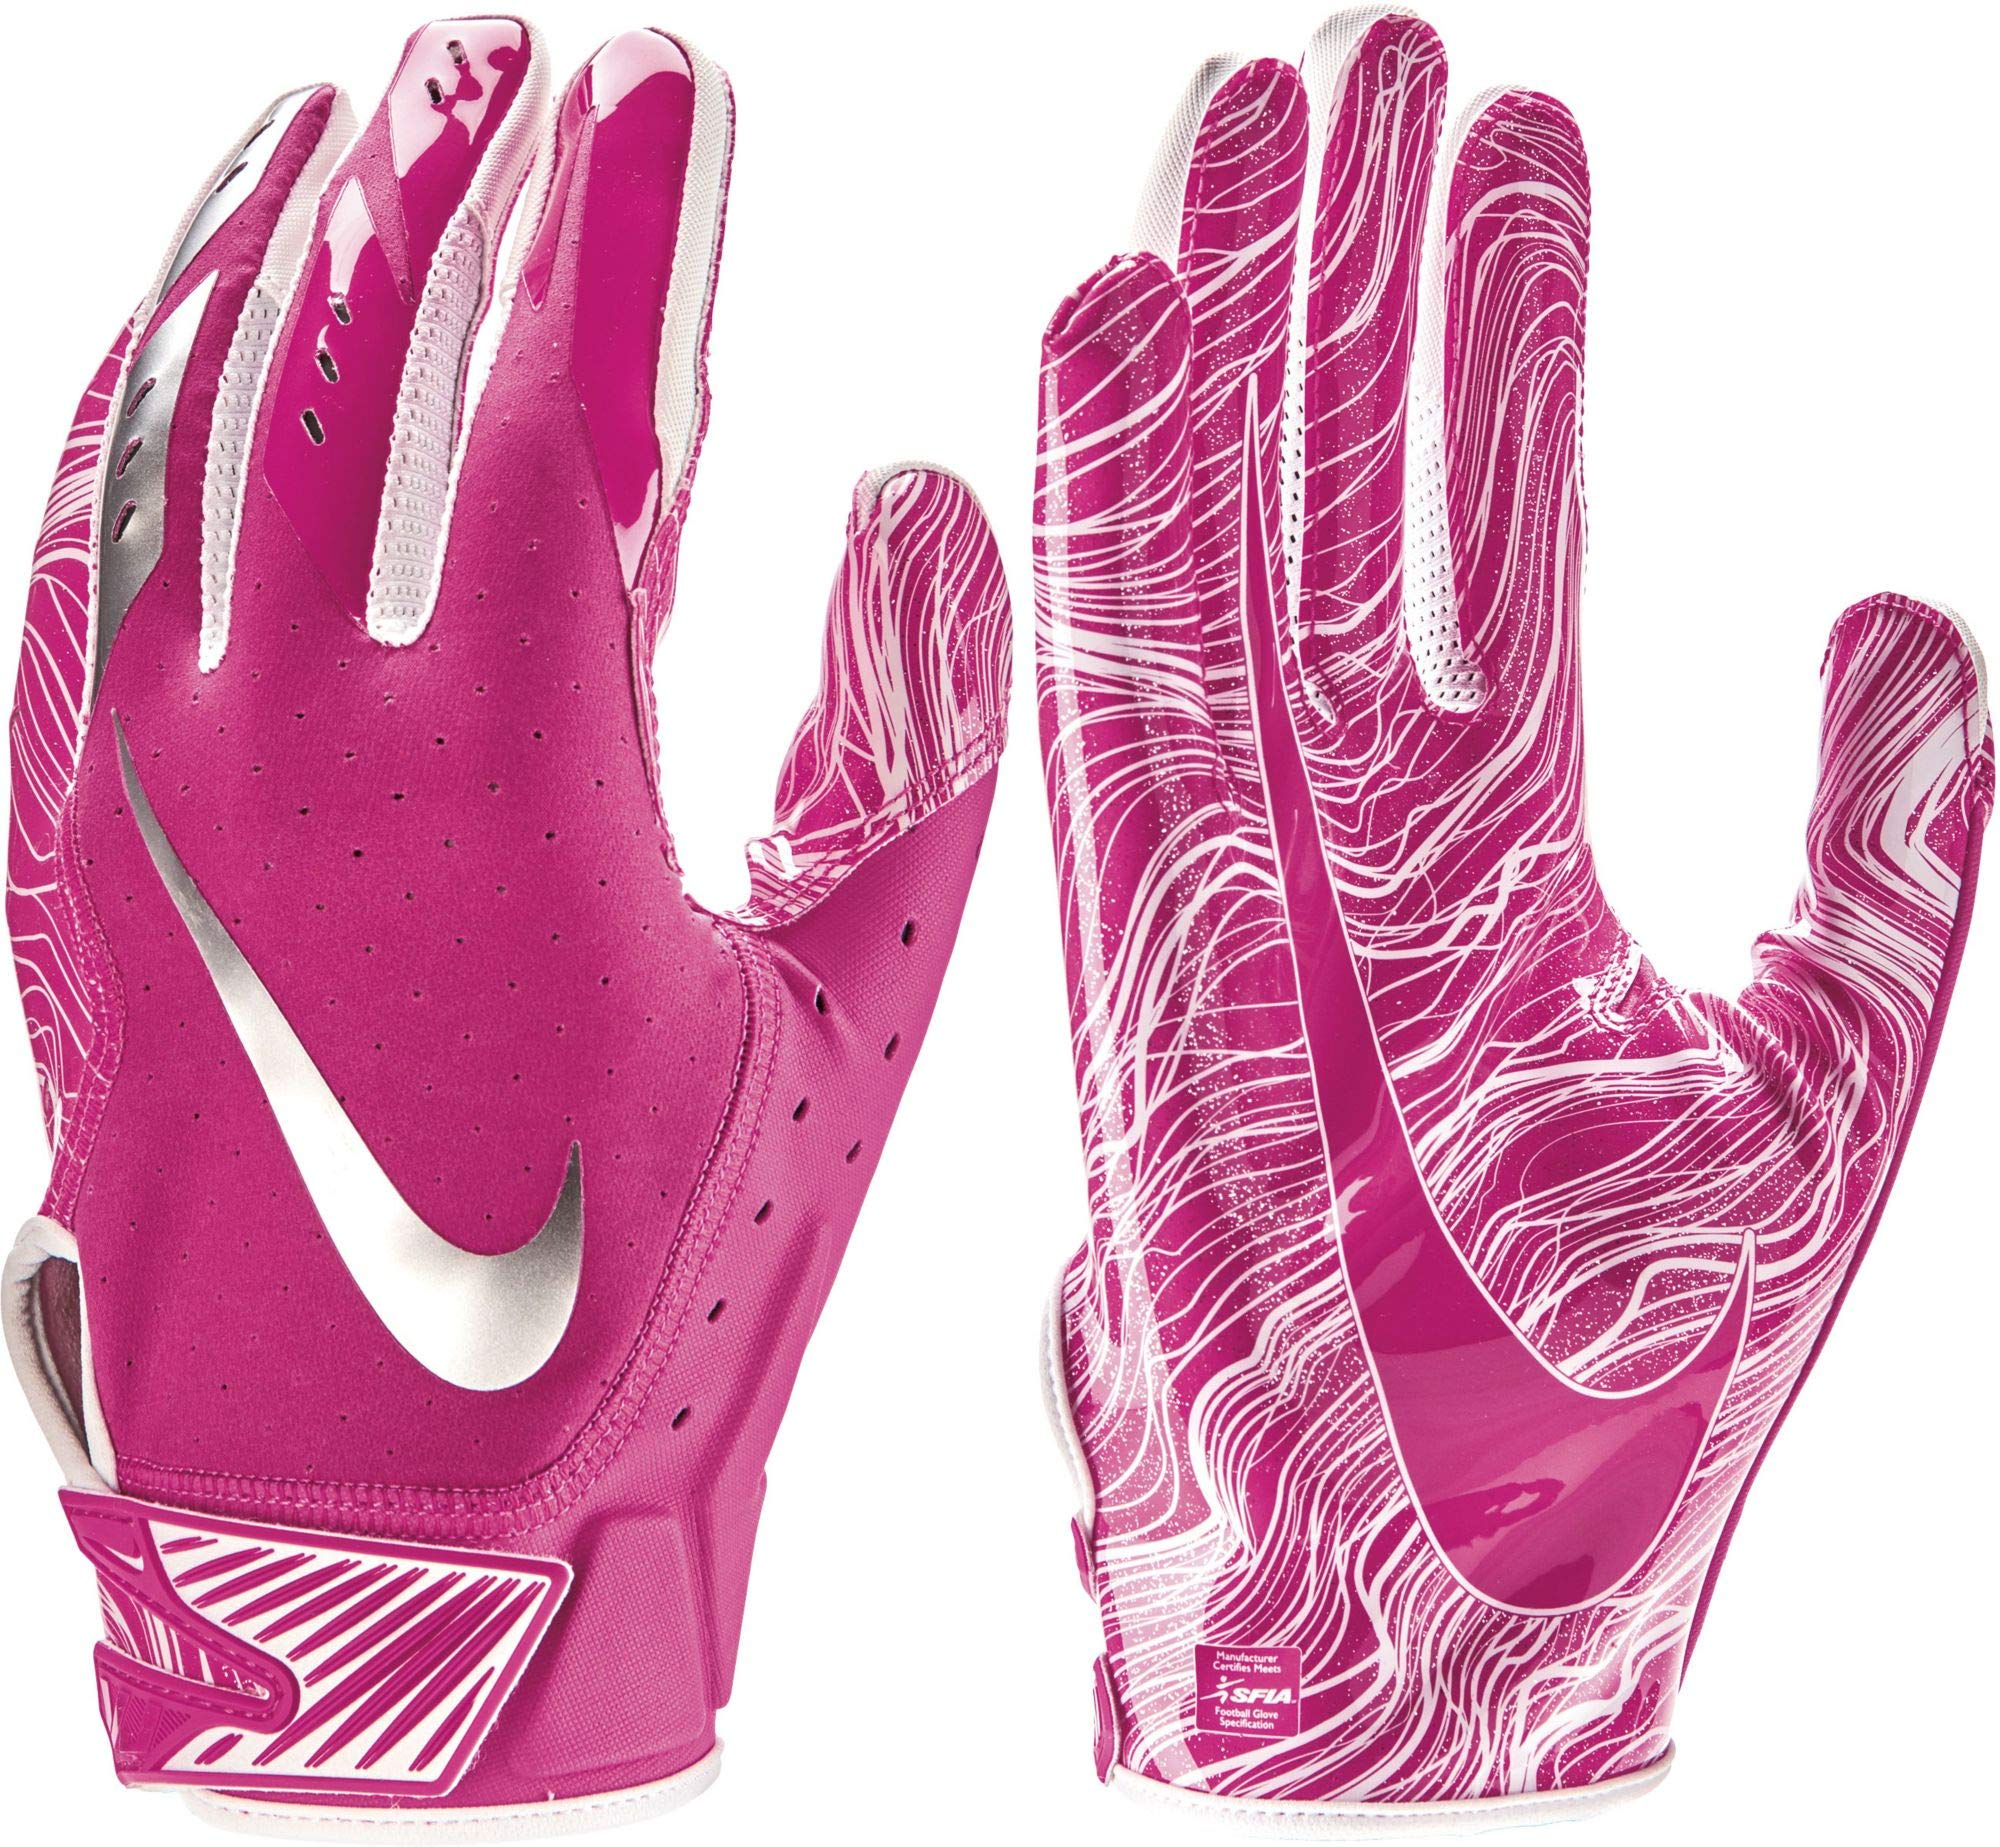 NIKE Adult Vapor Jet 5.0 Breast Cancer Awareness Receiver Gloves 2018 (Pink, Small)